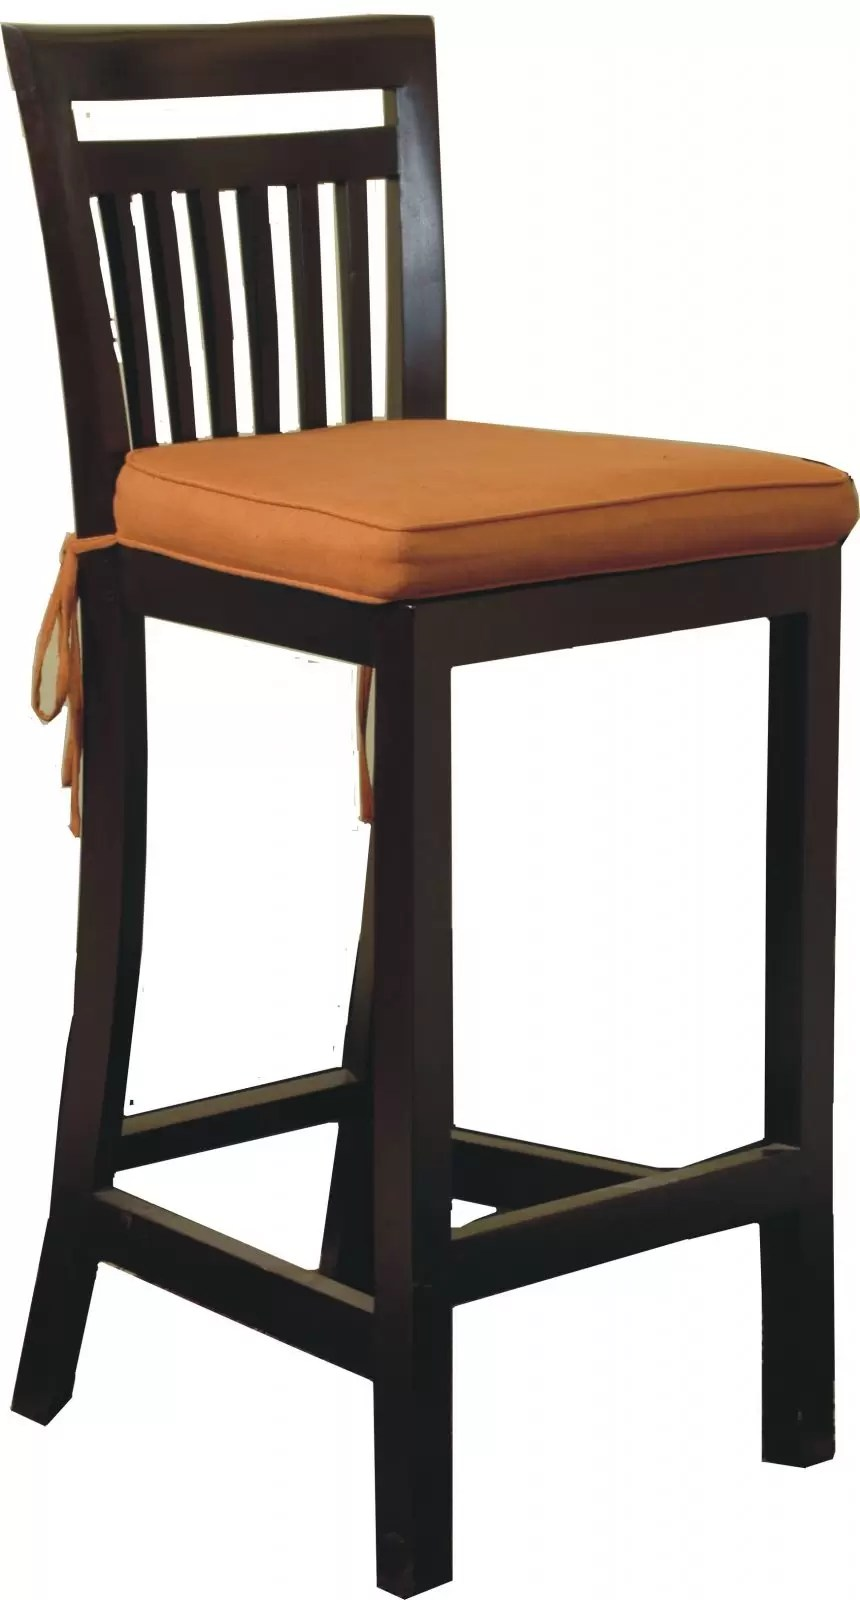 stool chair in malay transport chairs at walmart malaysia bar furniture indonesia stools